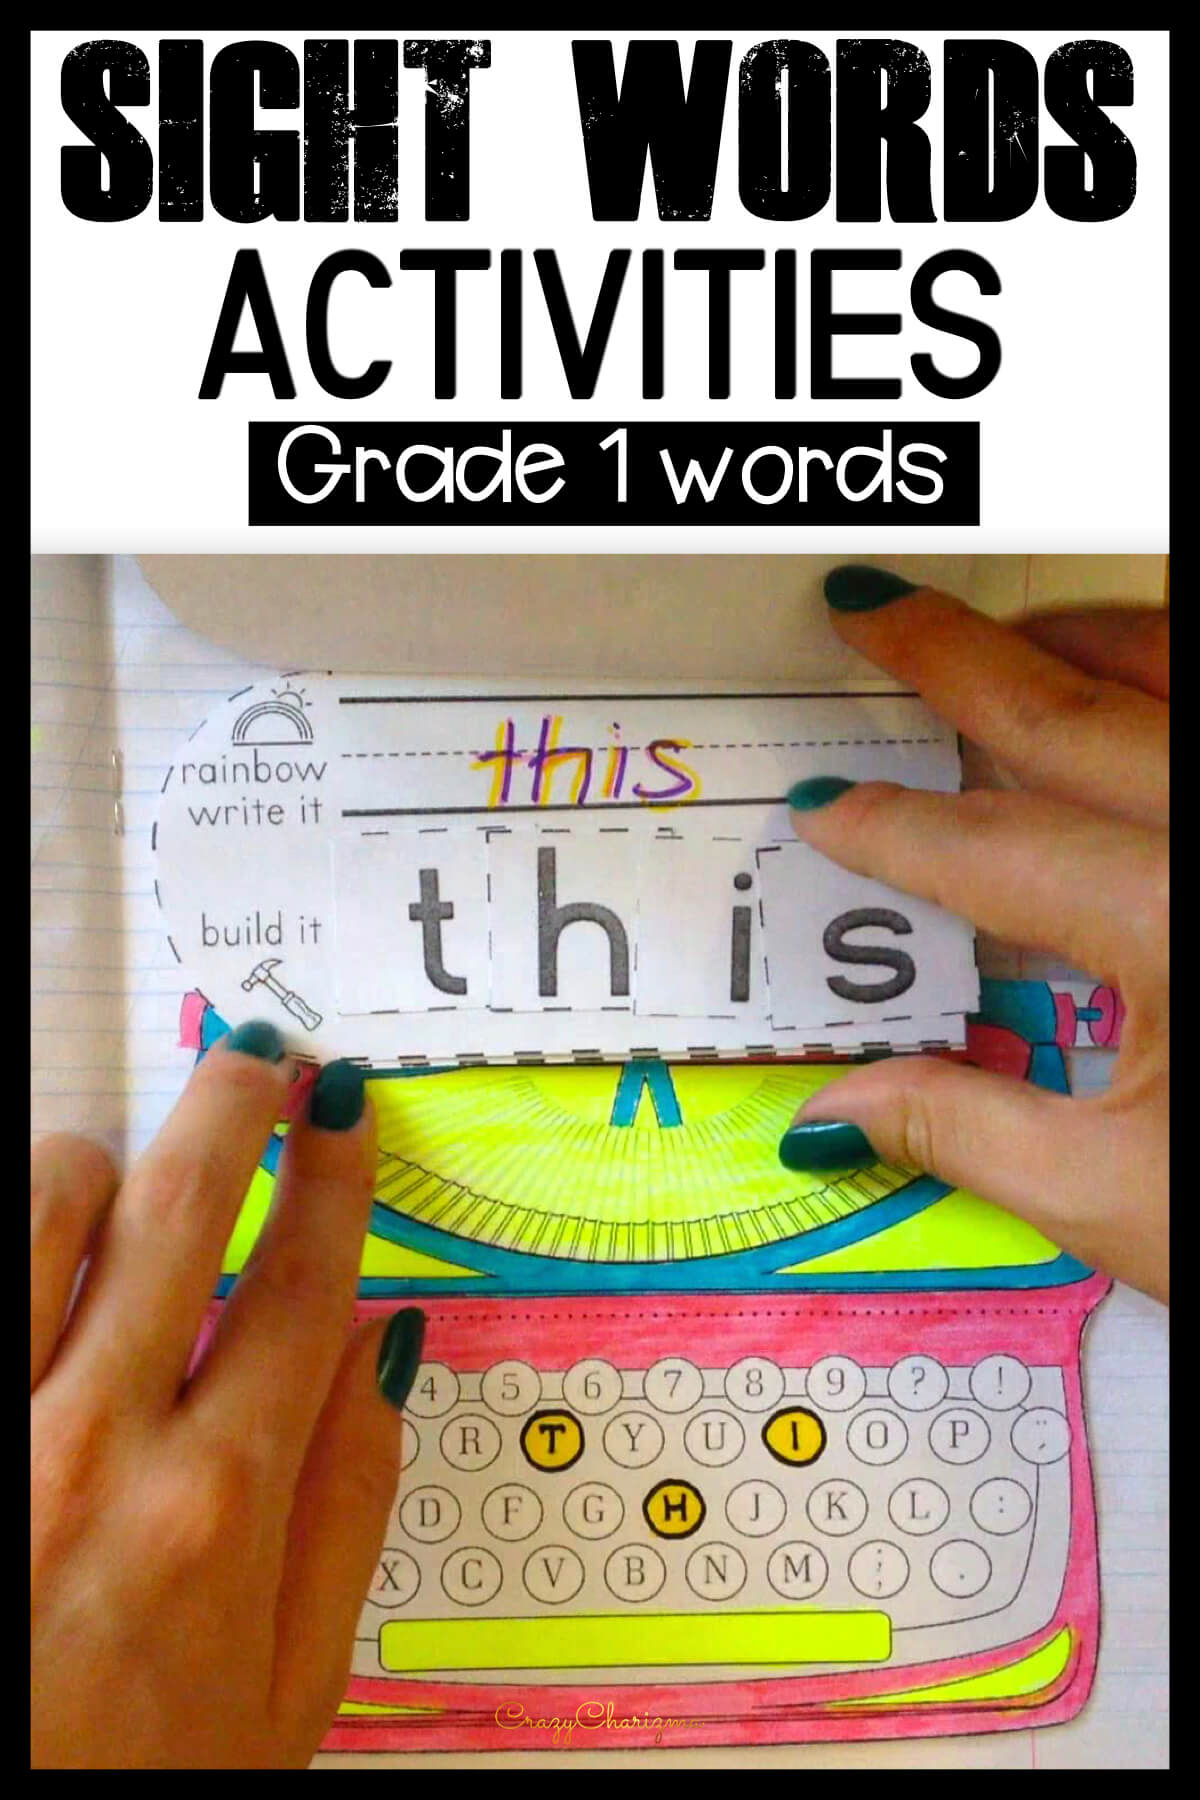 Looking for fun, engaging, but effective and memorable sight words activities to practice words from First Grade List? Grab this set and get kids excited with high frequency words!